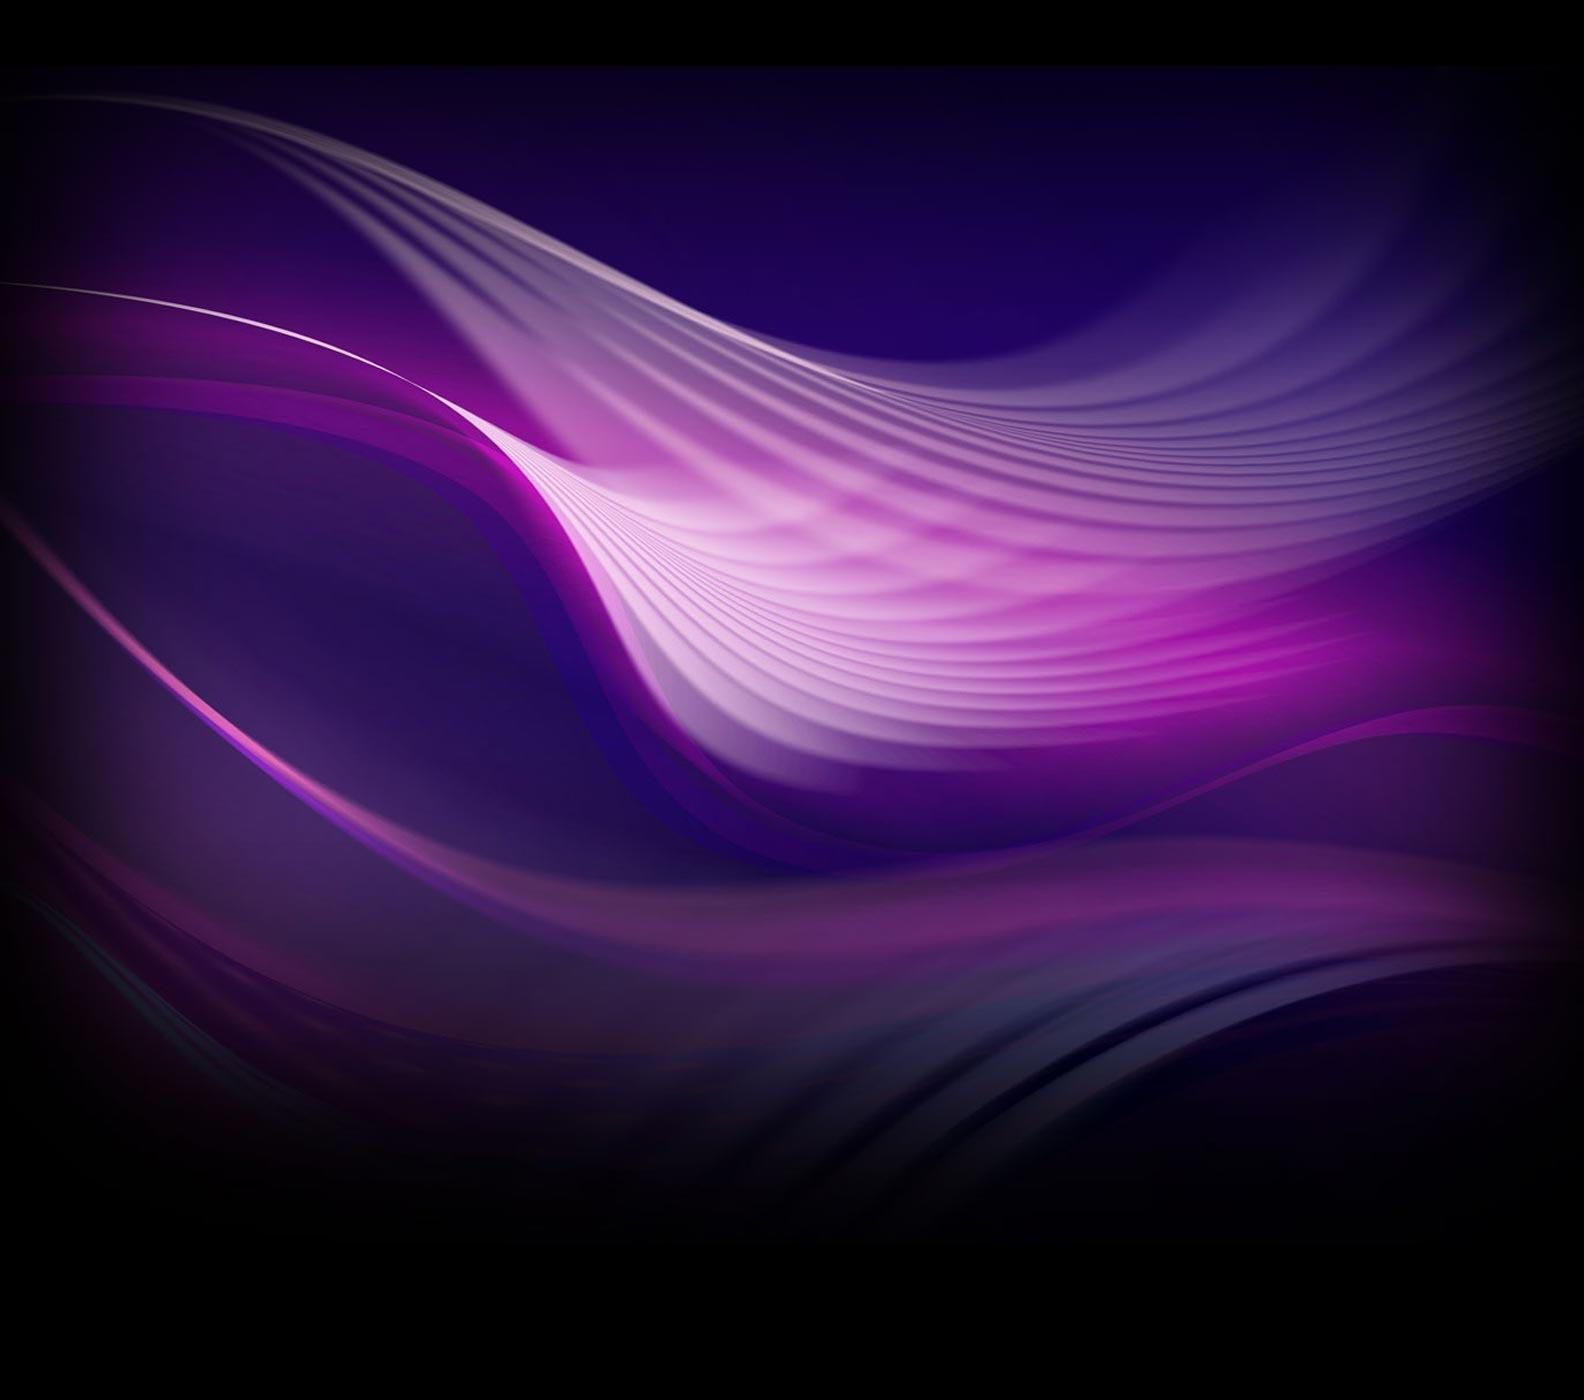 purple swirl background stock - photo #44